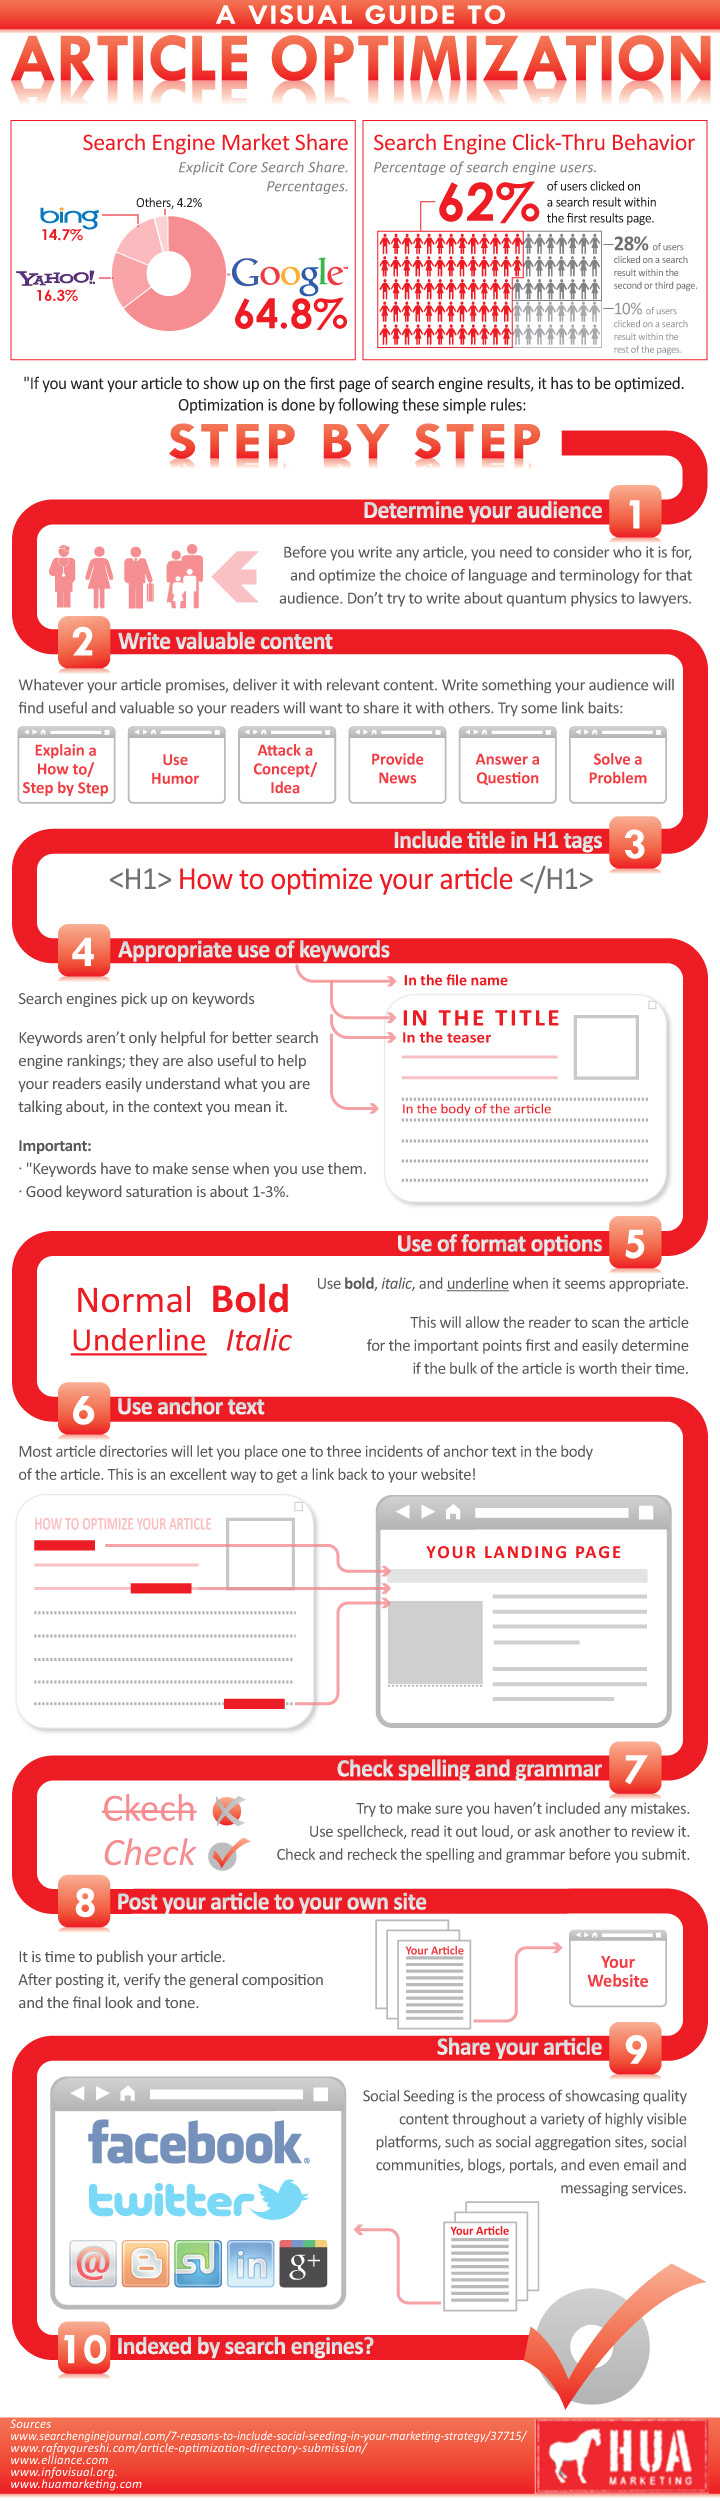 Guide to Article Optimization